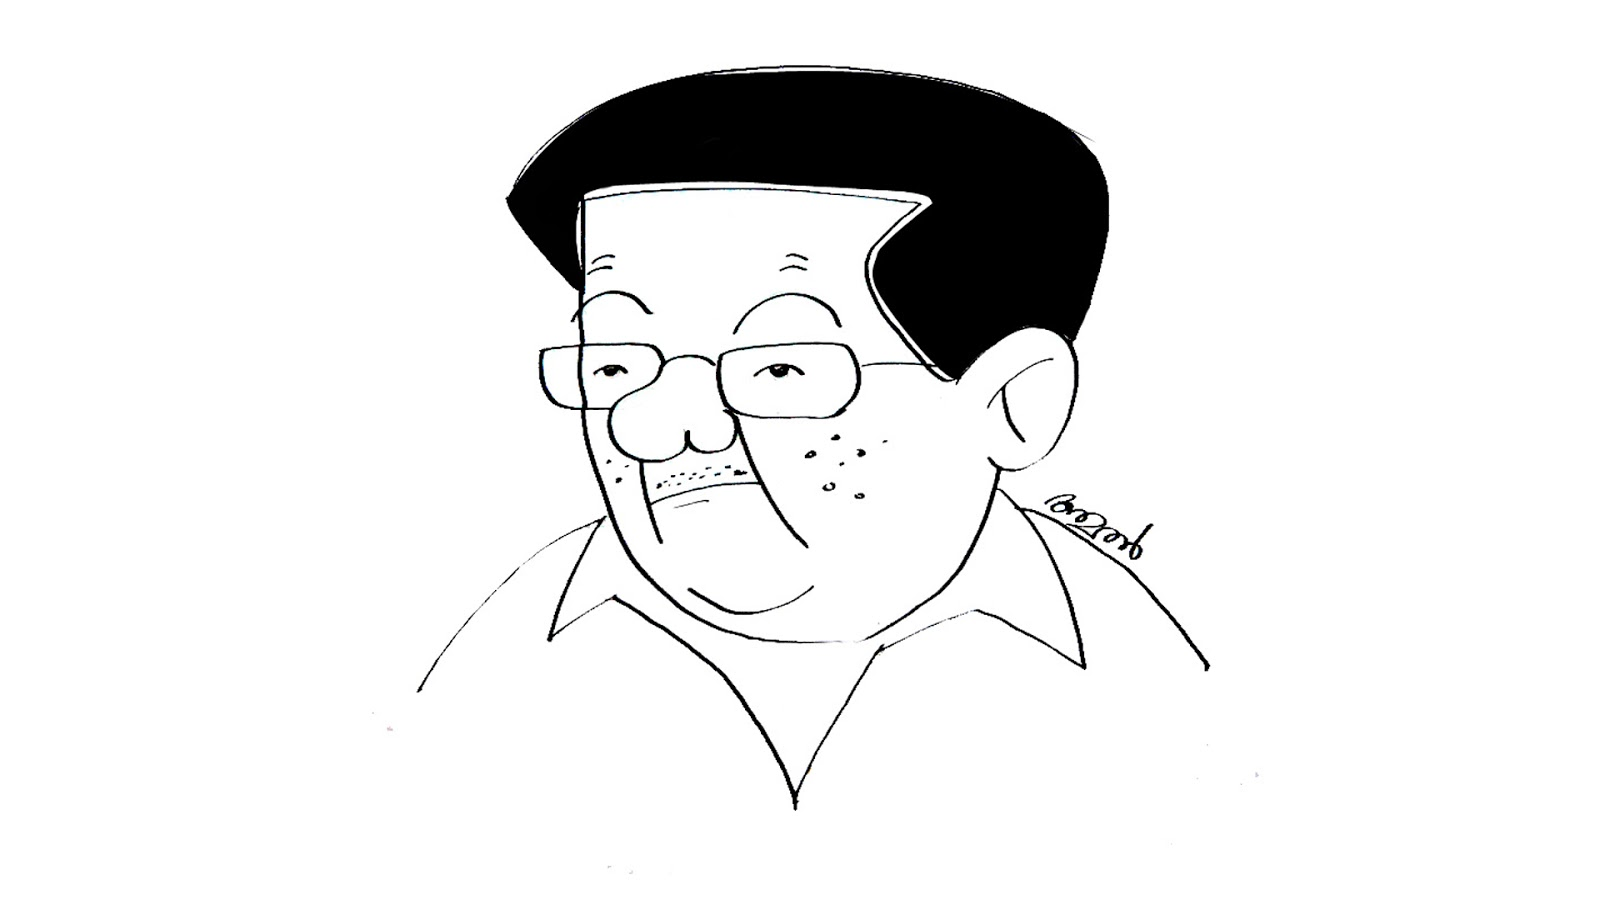 cartoom drawings cartoons by amal how to draw pinarayi vijayan cartoon cartoom drawings